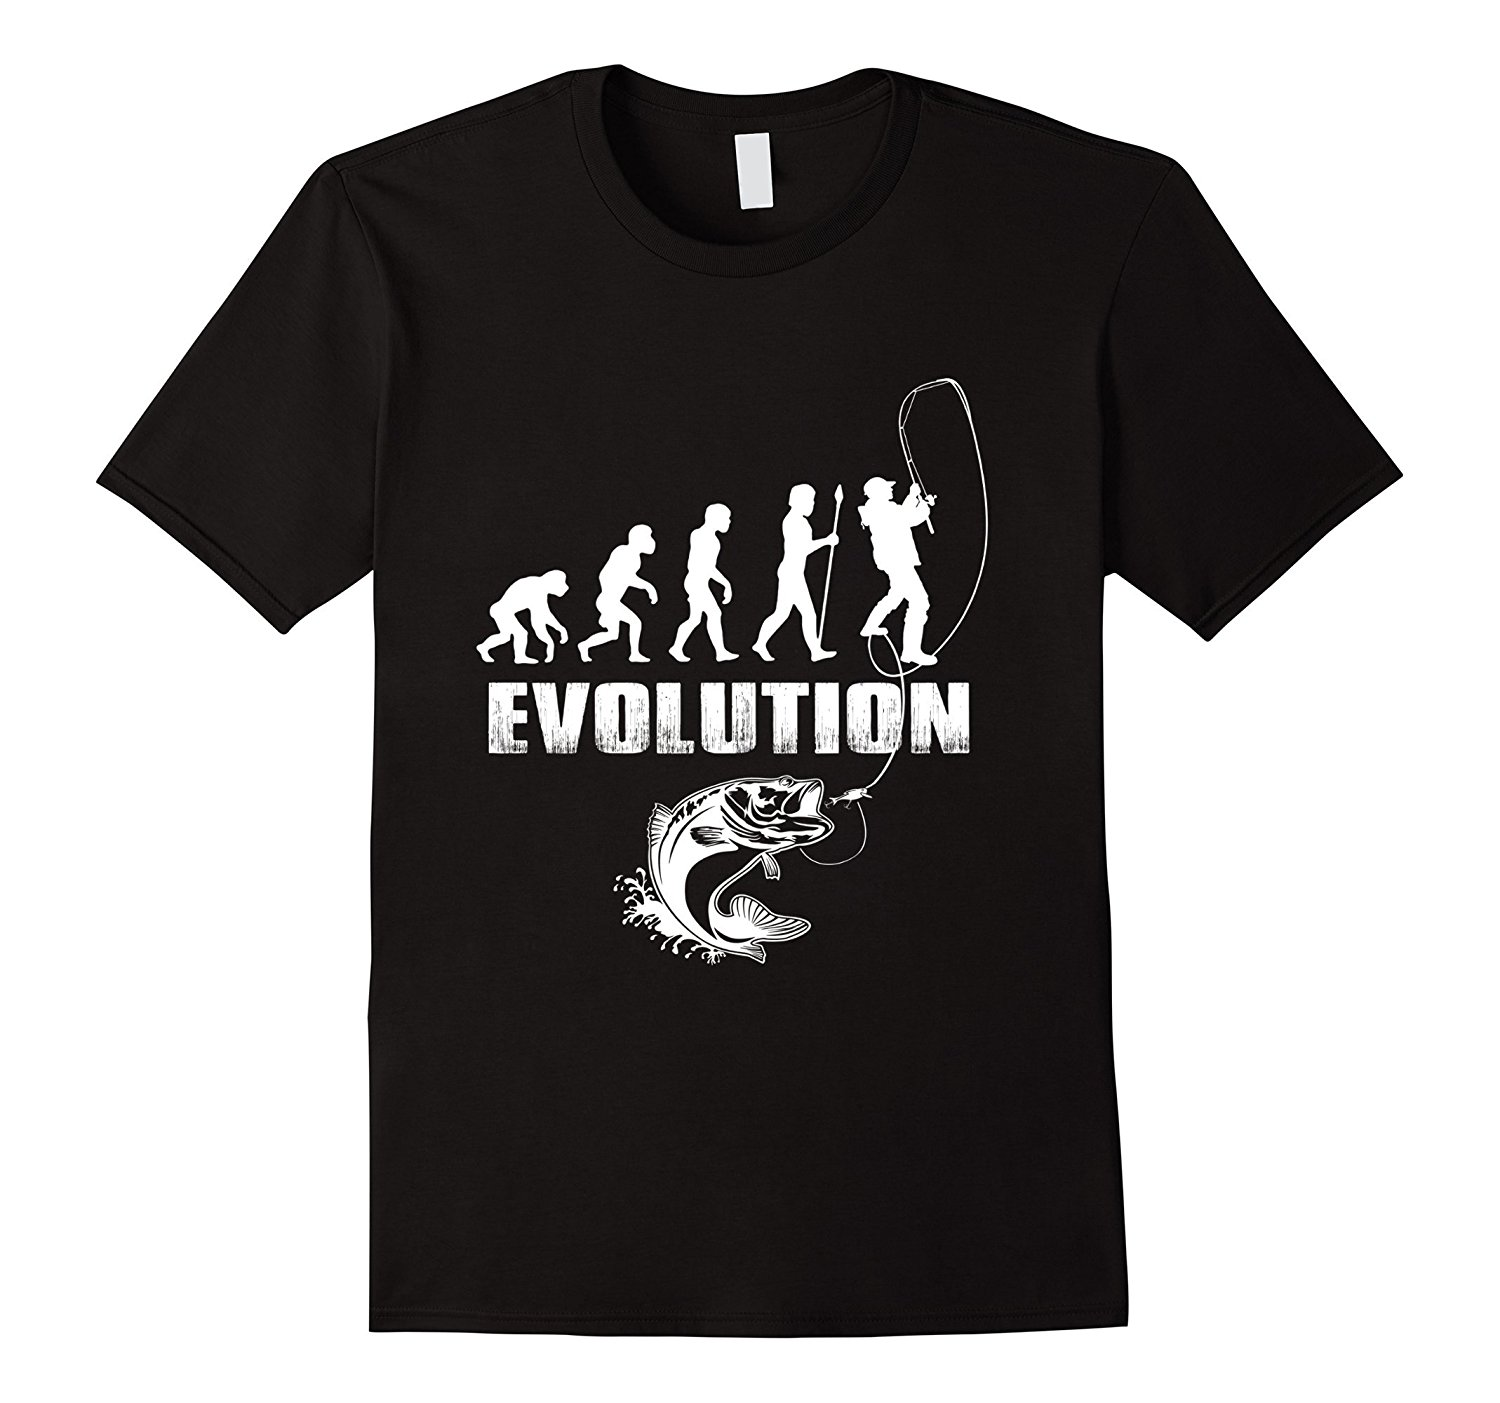 Fishinger Evolution American Funny Fishinger T Shirt Gift Idea Summer New Men Cotton T Shirt Top